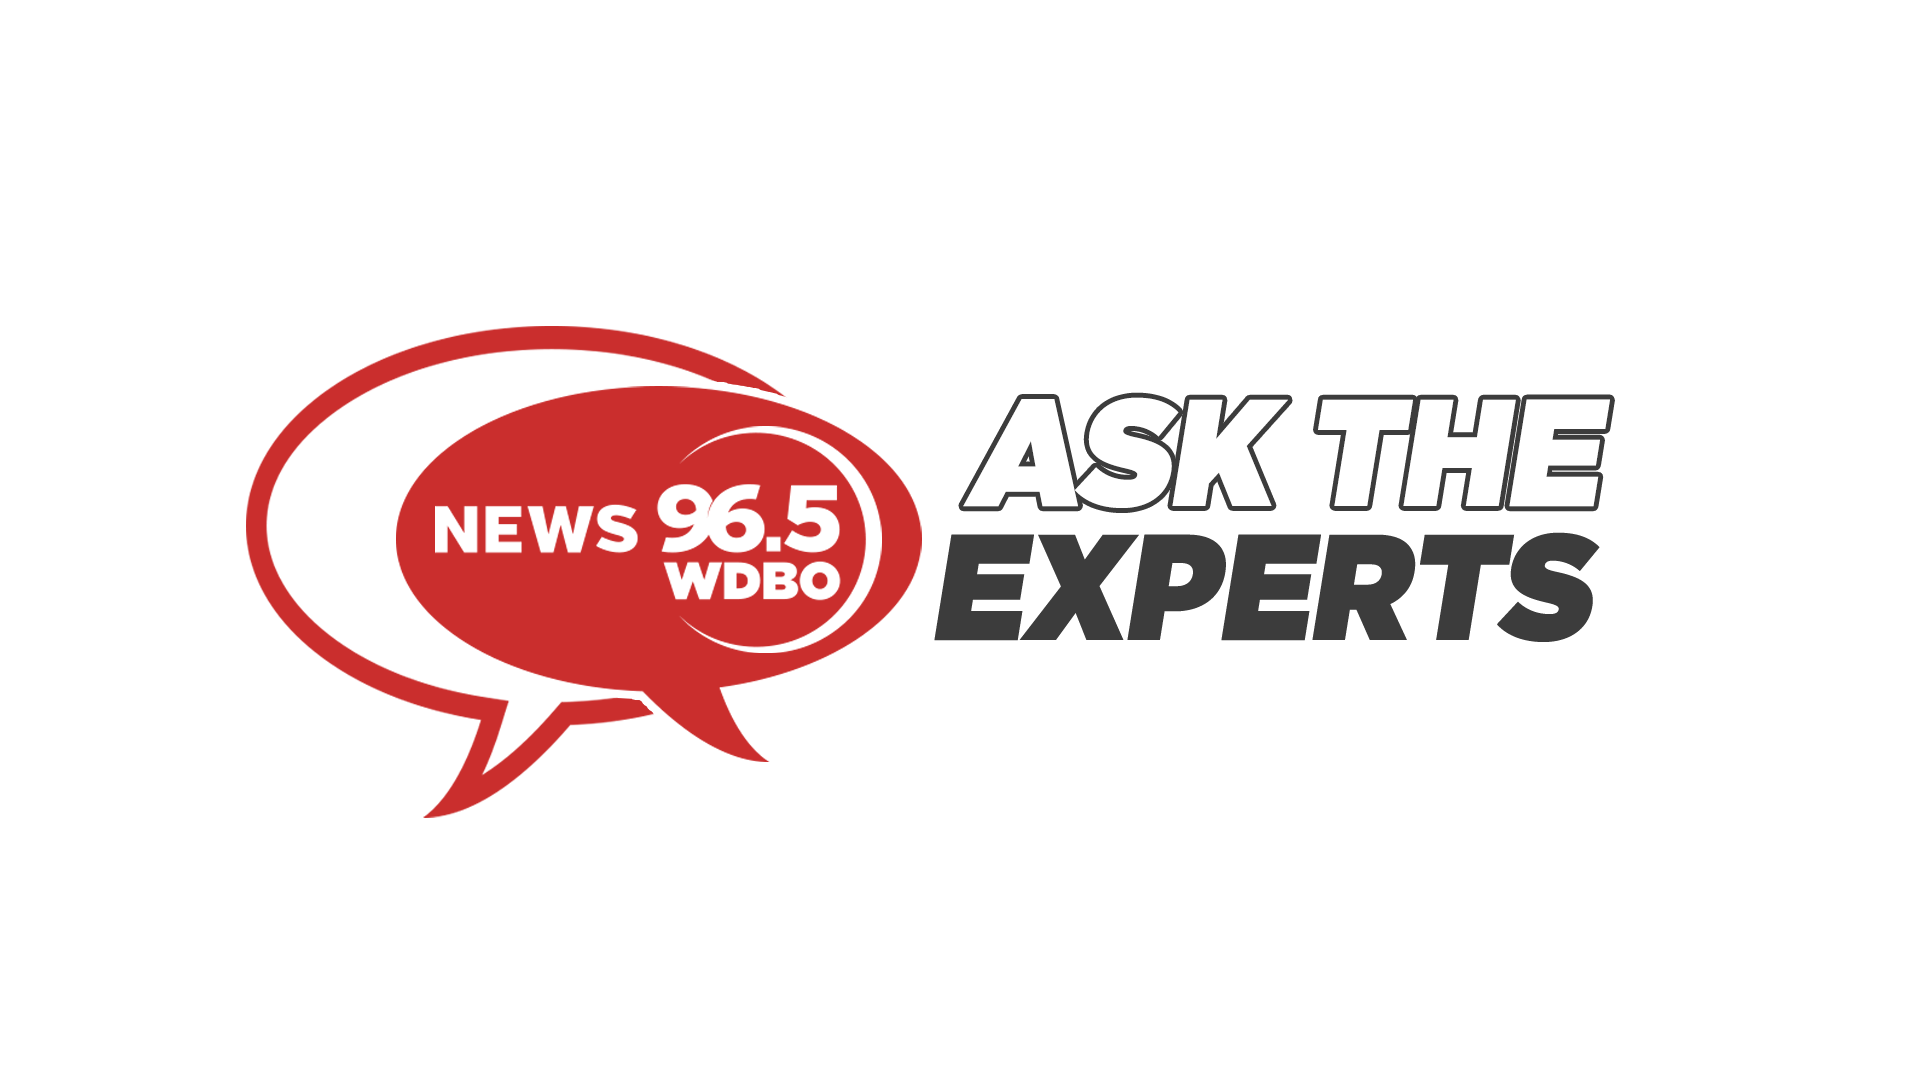 WDBO_Ask The Experts Logo NEW 2019